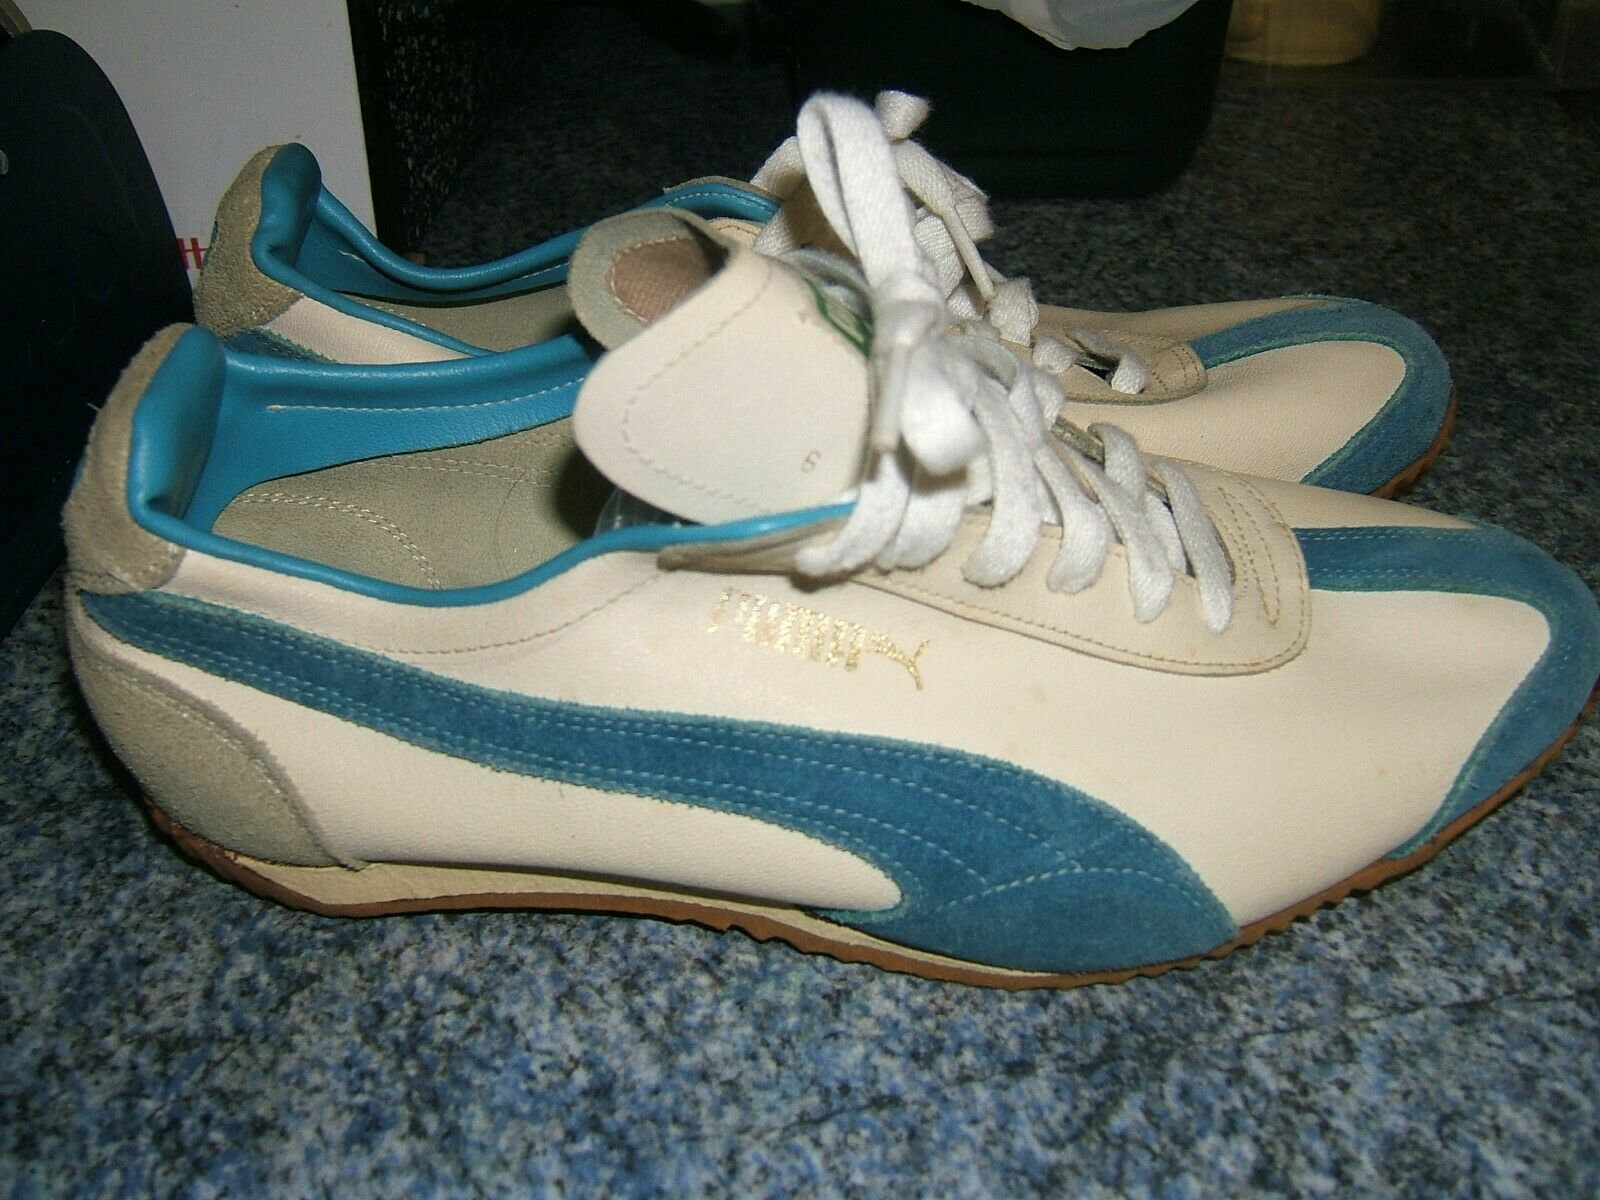 Vintage 1960 70 S Puma White Blue Thin Sole Trainer Uk8 Us8 5 Eu42 265 In 2020 Puma Vintage Sneakers New Vintage